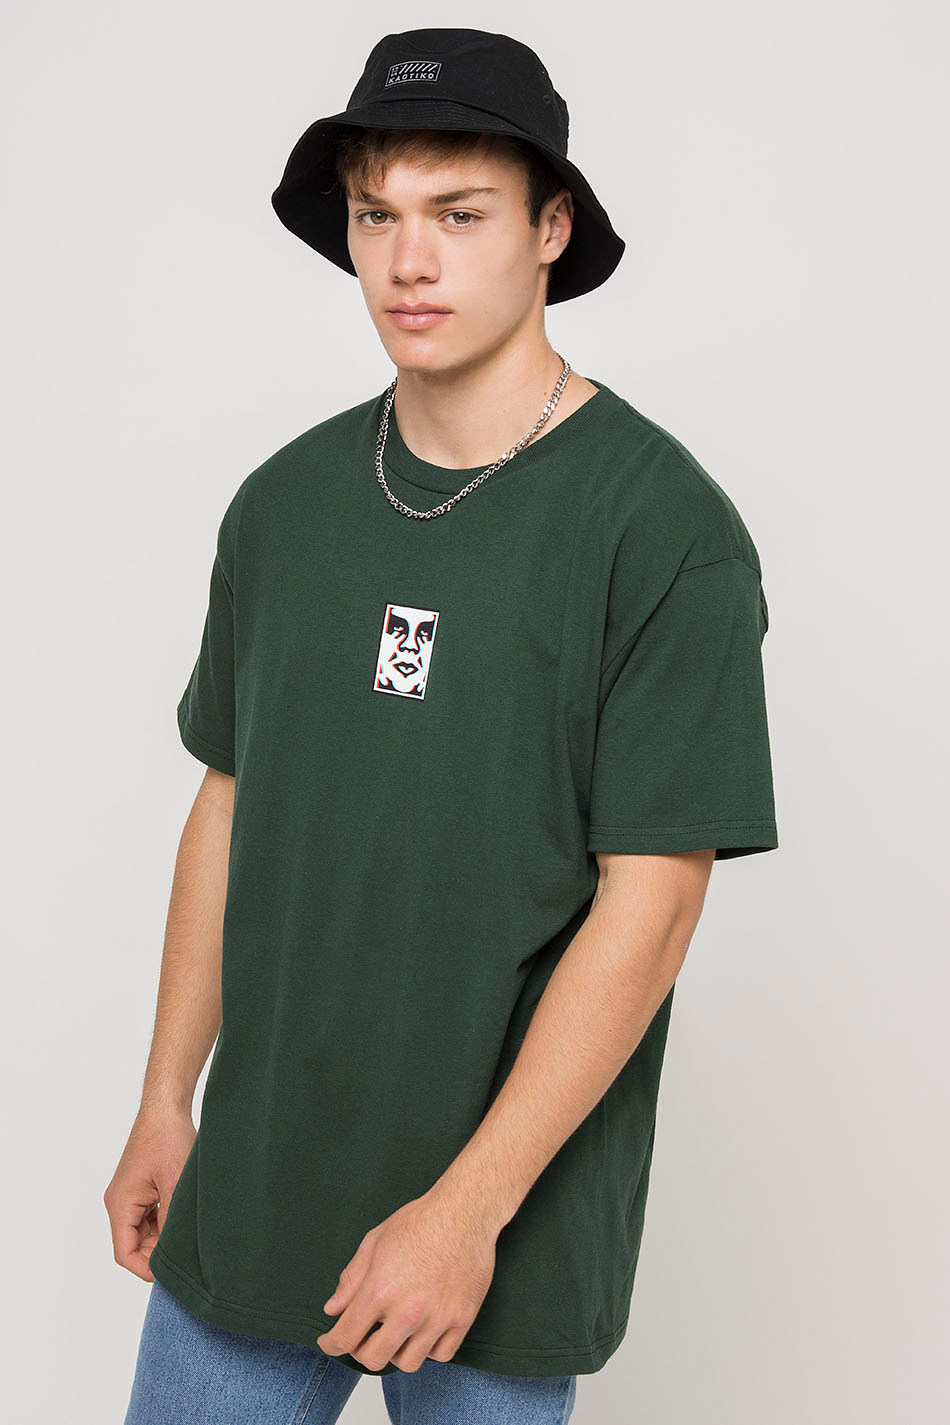 Obey Classic Double Vision Green T-shirt